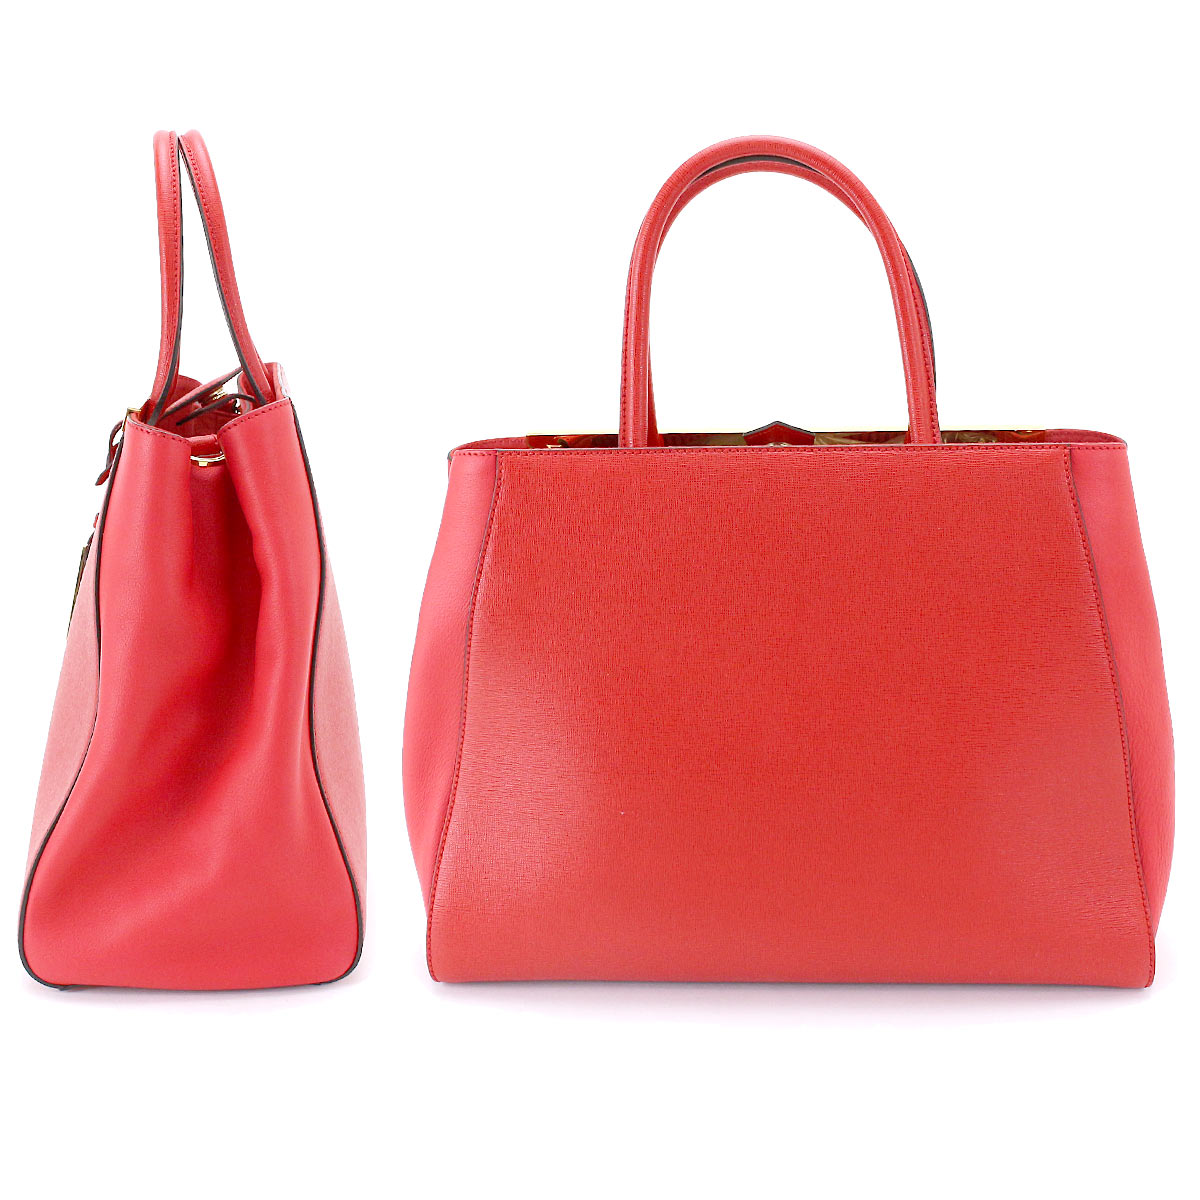 7f698ff8e475 Details about Auth FENDI 2Jours 2way Hand Shoulder Bag Leather Red 8BH250  Purse 90068521